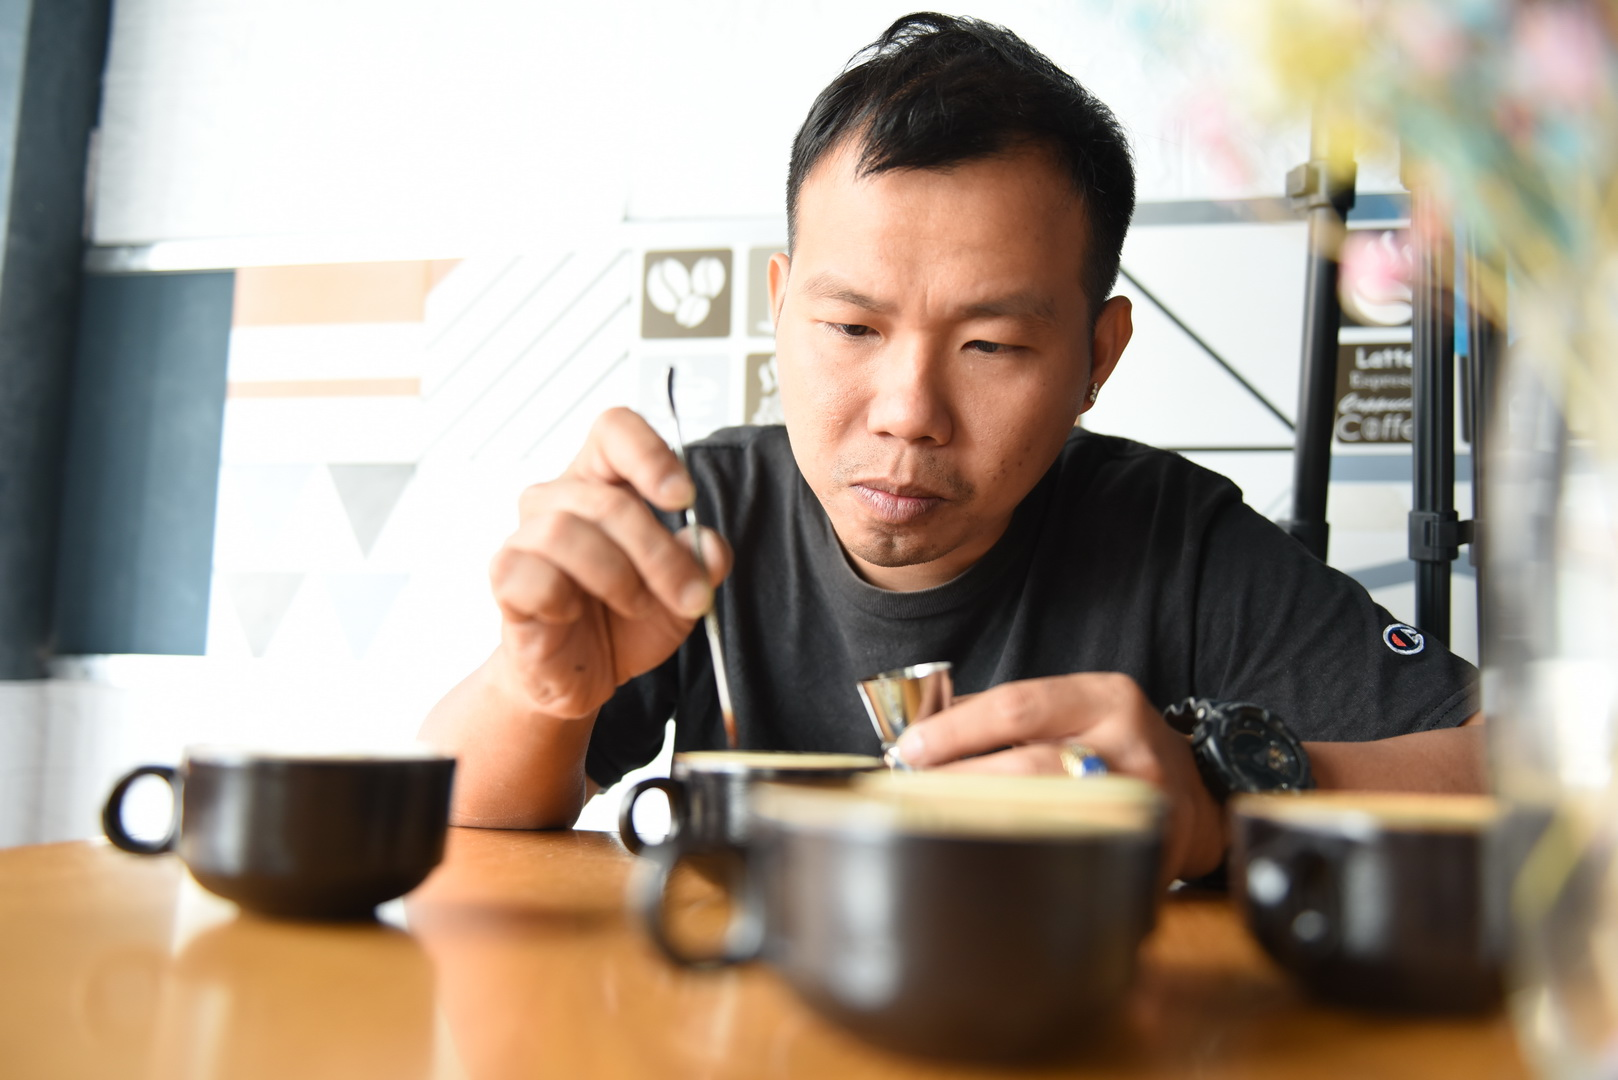 Cao Truong Minh is working on a cup of egg coffee before serving it to his customer at his coffee shop in Ho Chi Minh City's Binh Thanh District. Photo: Ngoc Phuong/ Tuoi Tre